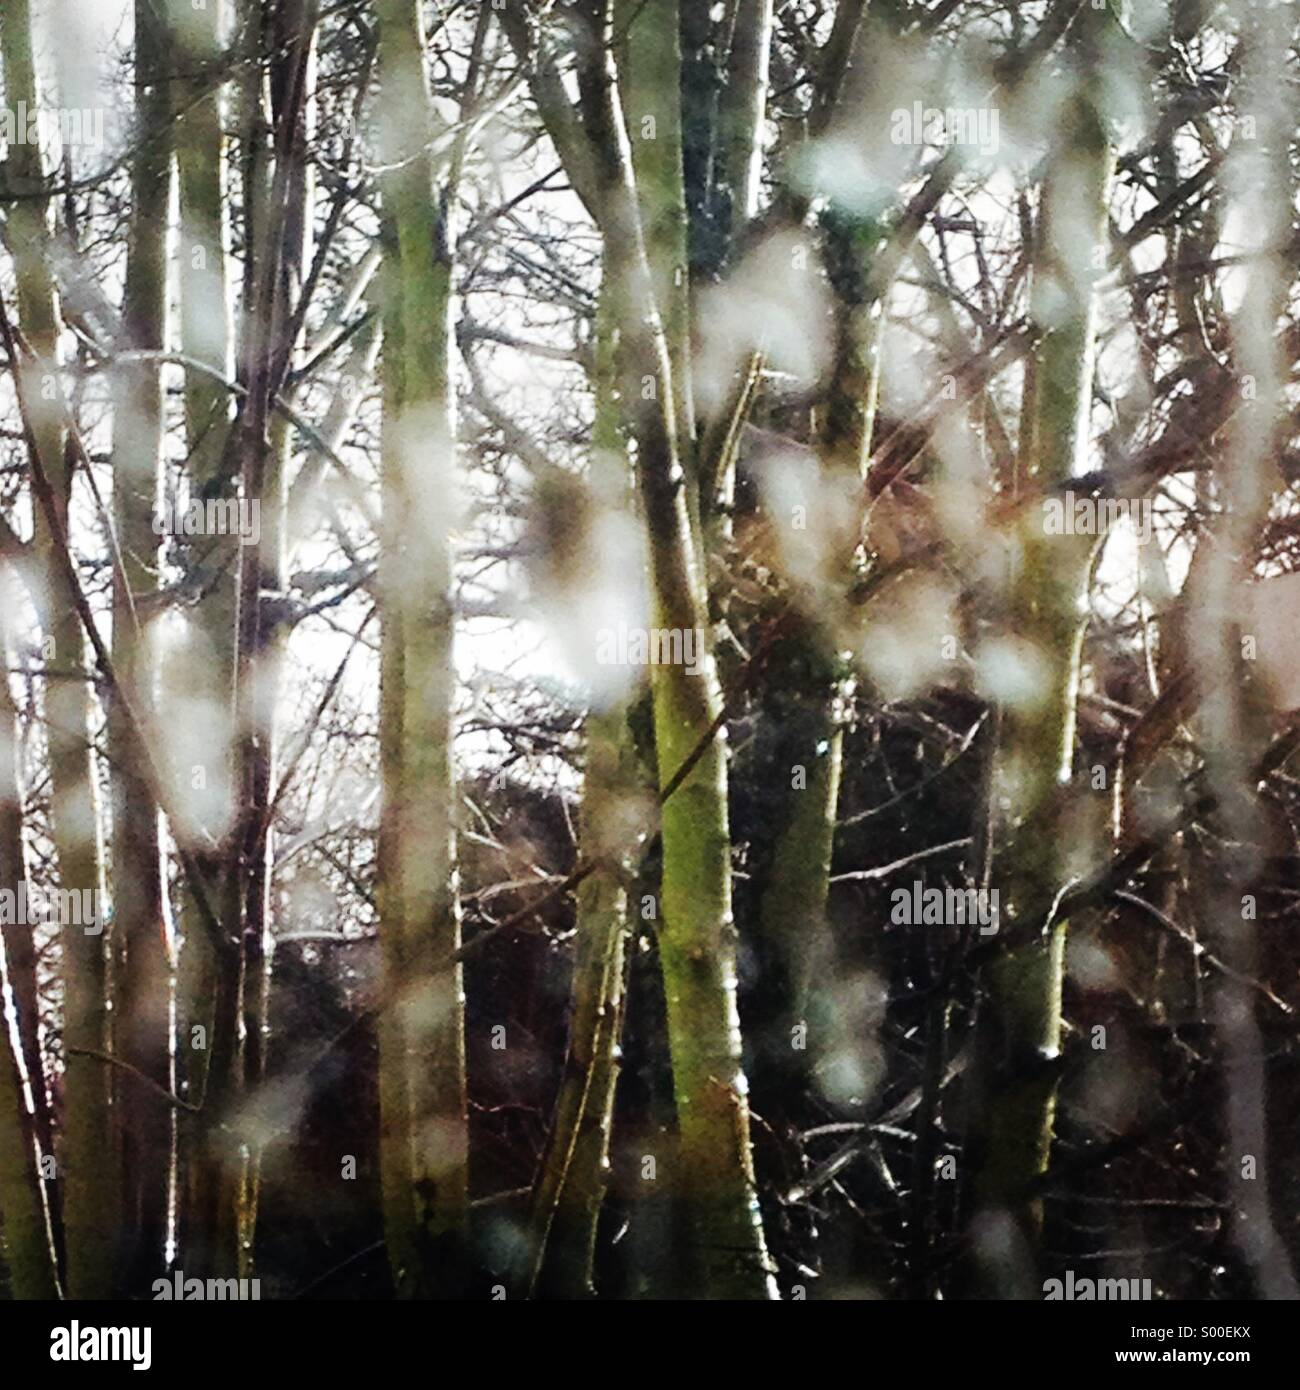 View of trees catching glimpse of sunshine through a rain covered window - Stock Image